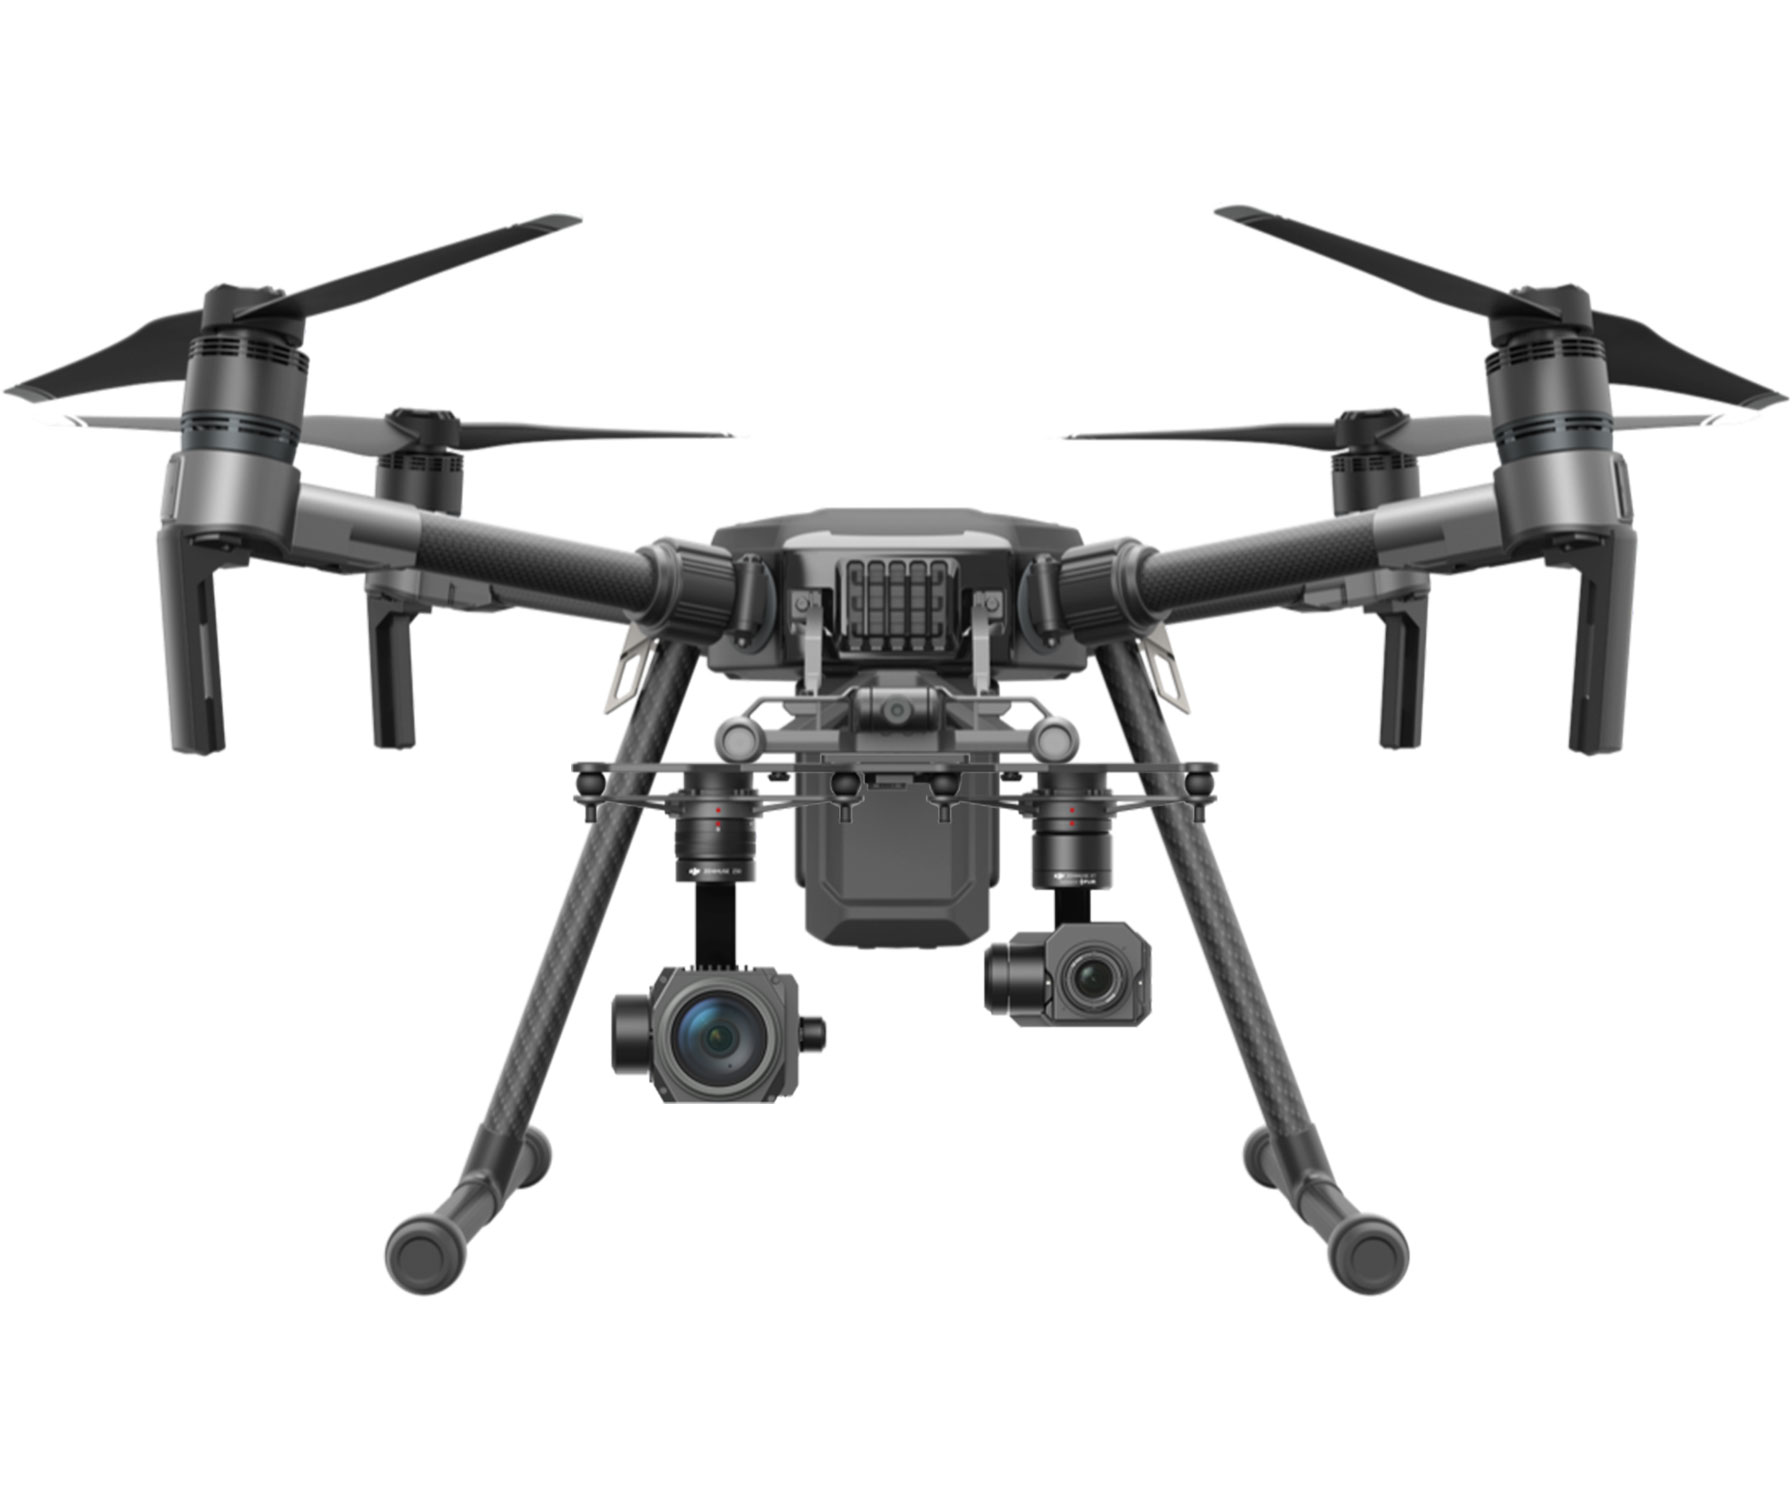 Dji Announces An All New Series Of Industrial Drones The